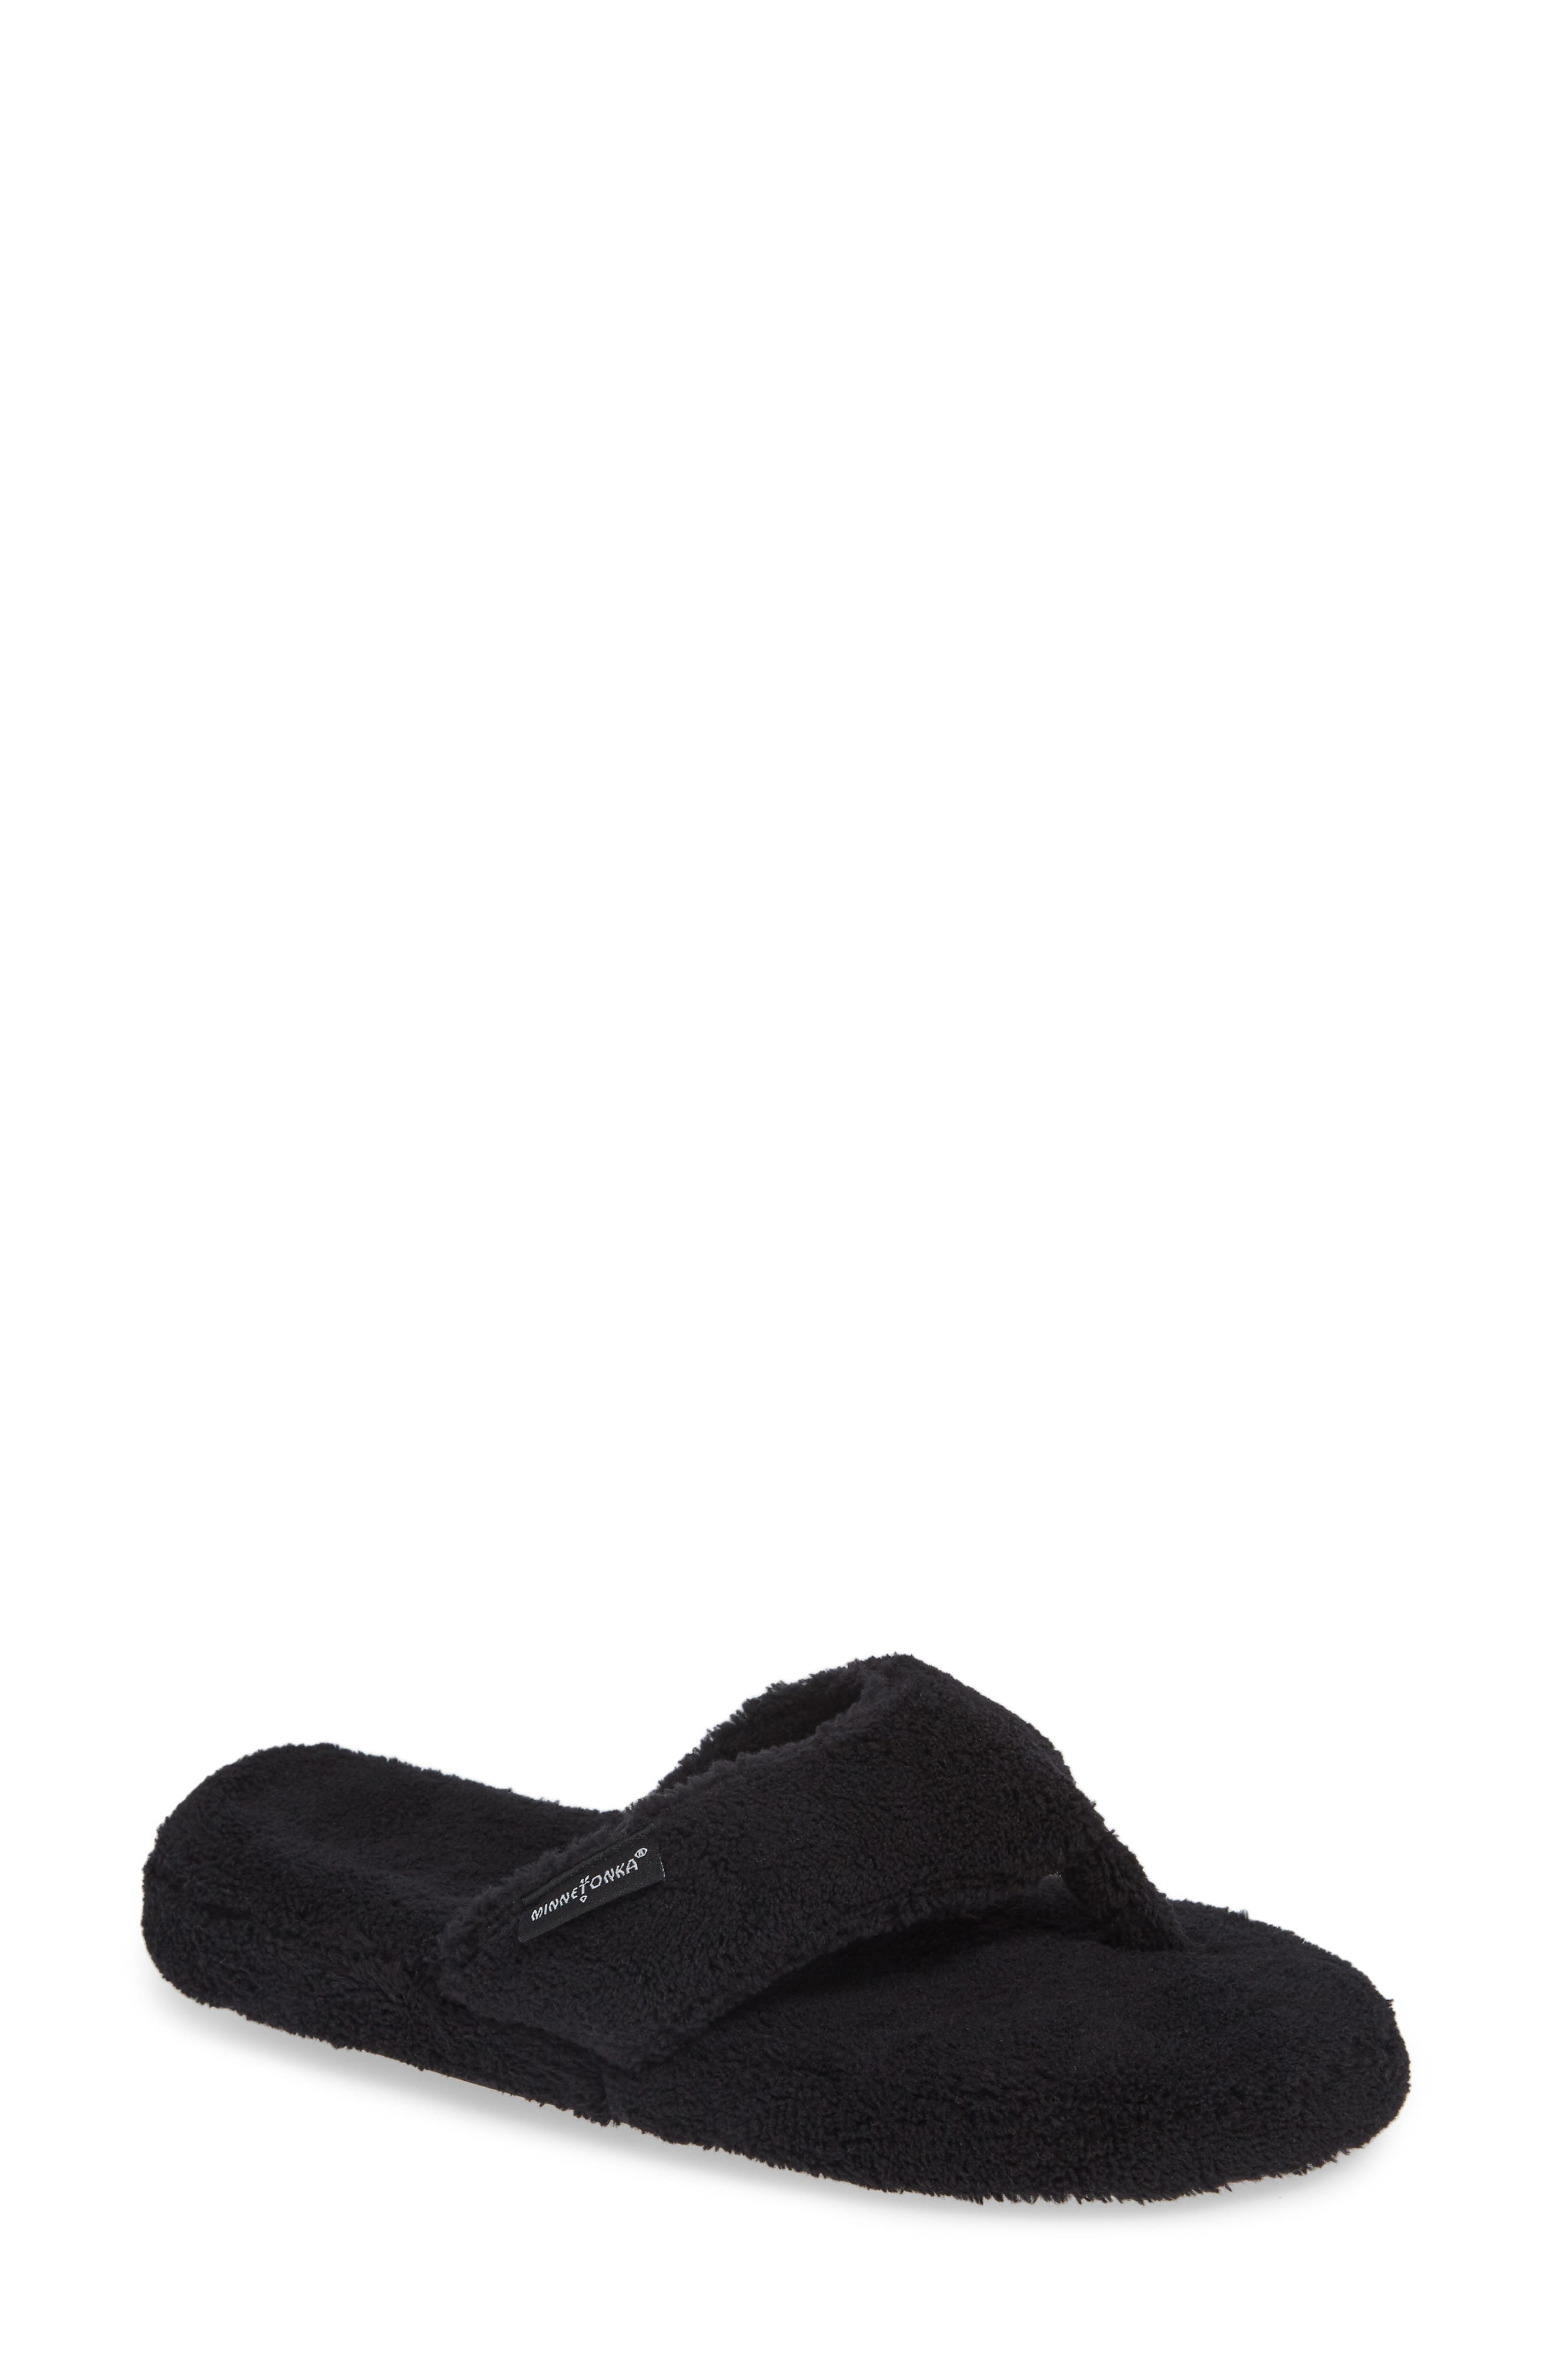 MINNETONKA Olivia Spa Flip Flop, Main, color, BLACK FABRIC